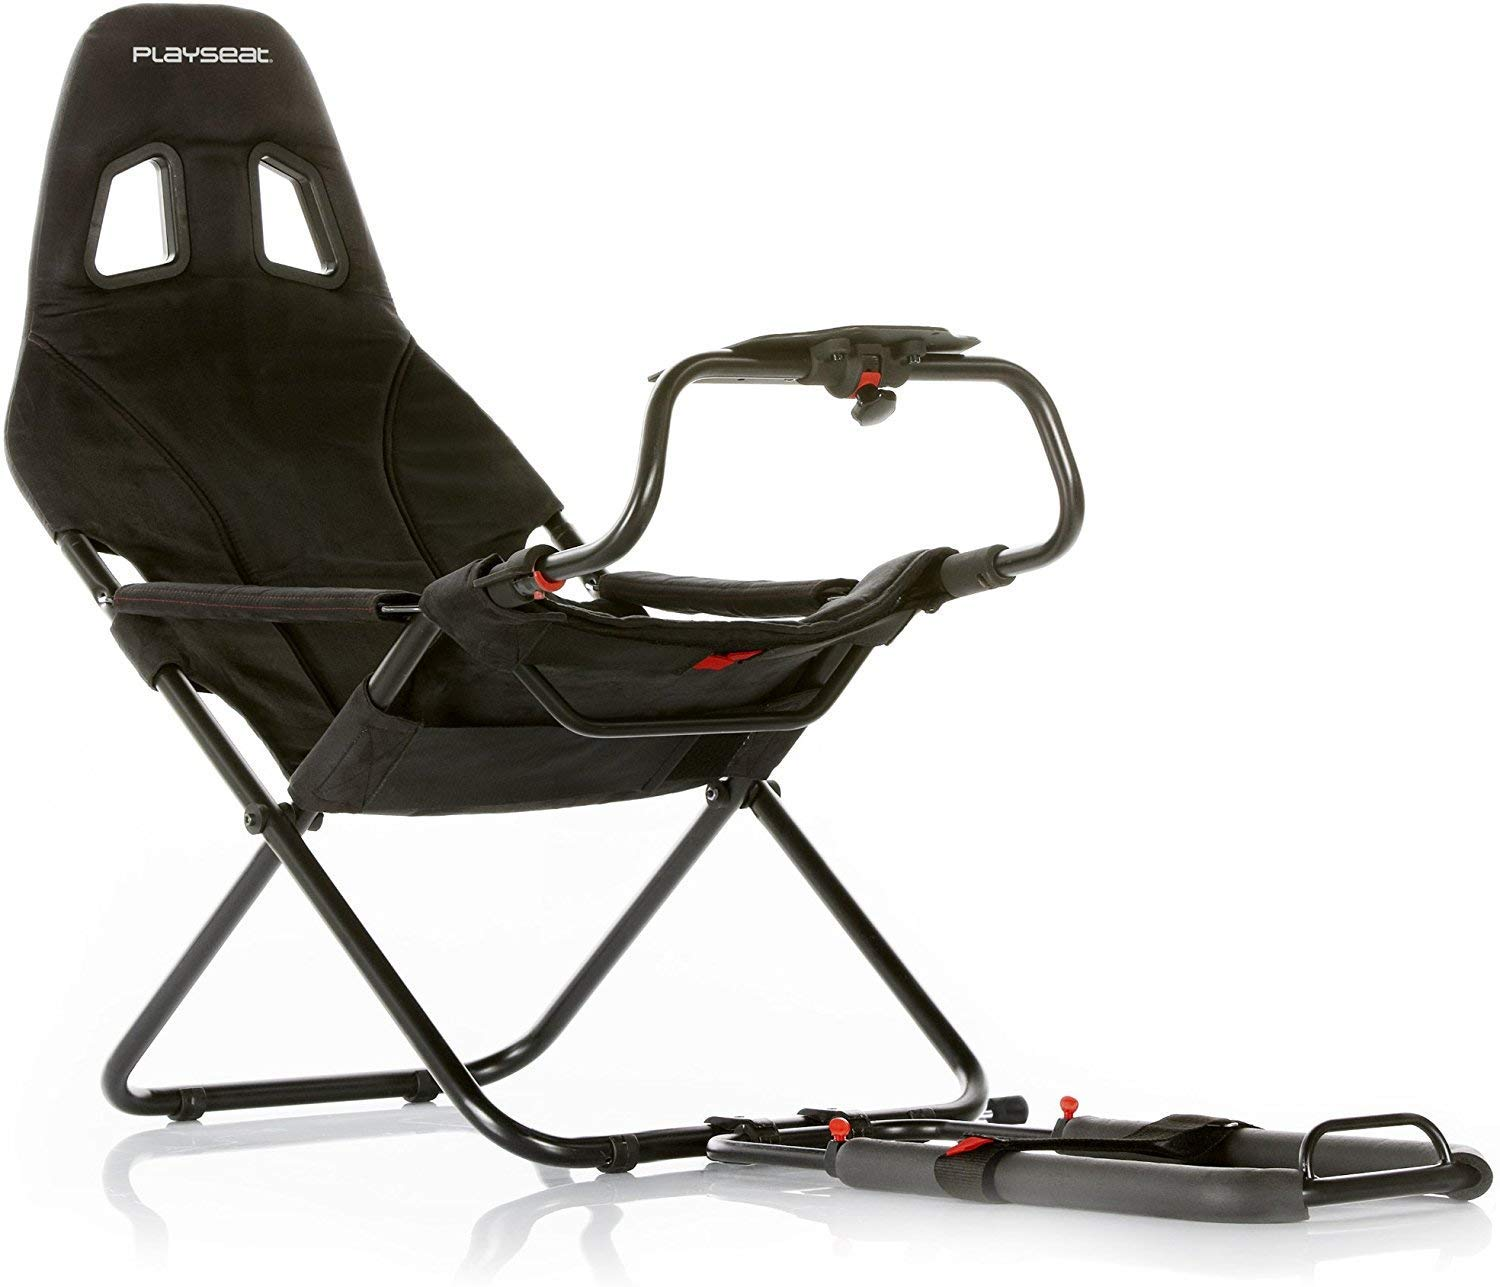 PLAYSEAT GAMING CHAIR PIEGHEVOLE